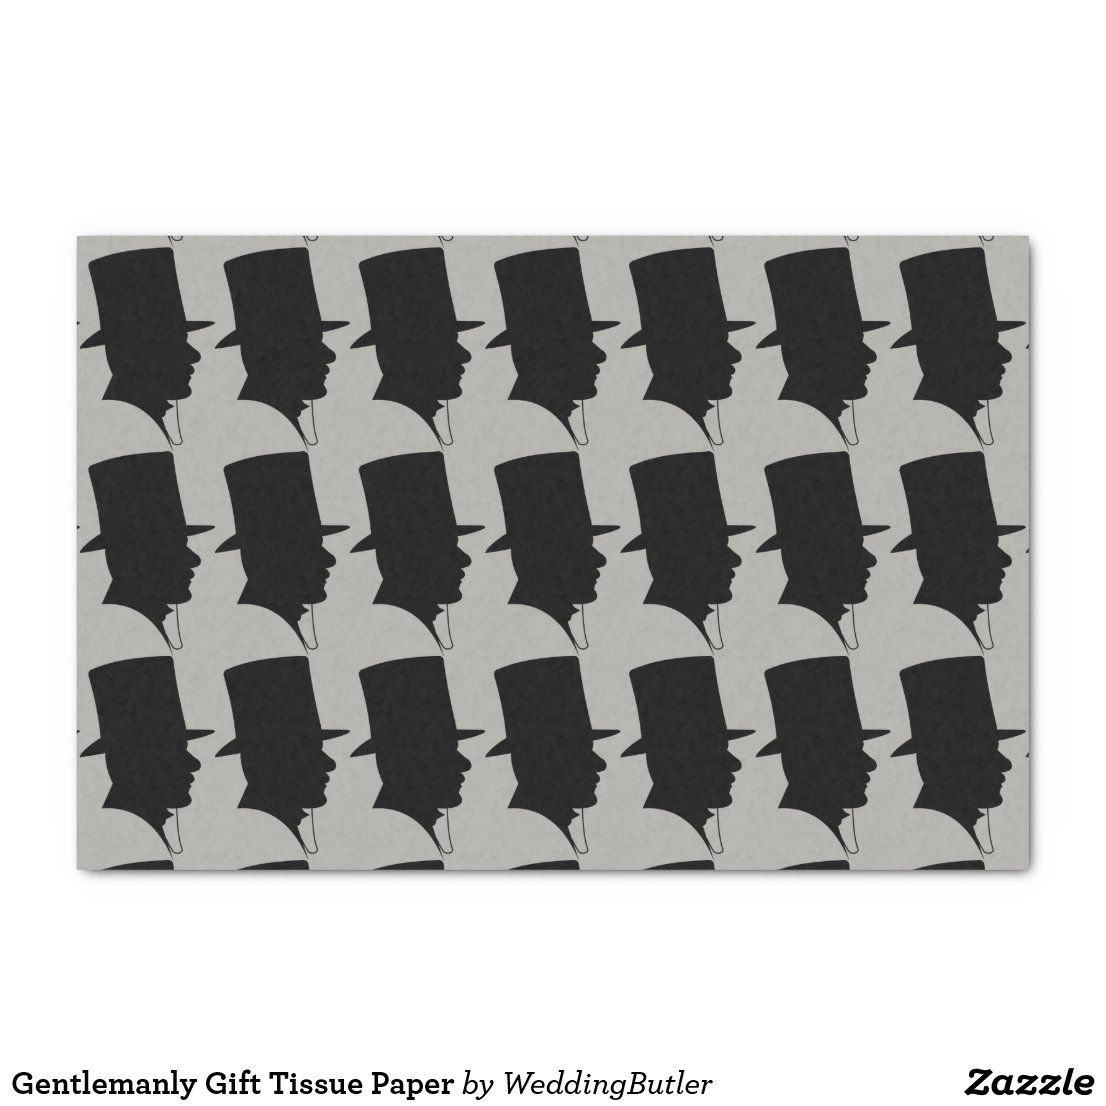 Gentlemanly Gift Tissue Paper